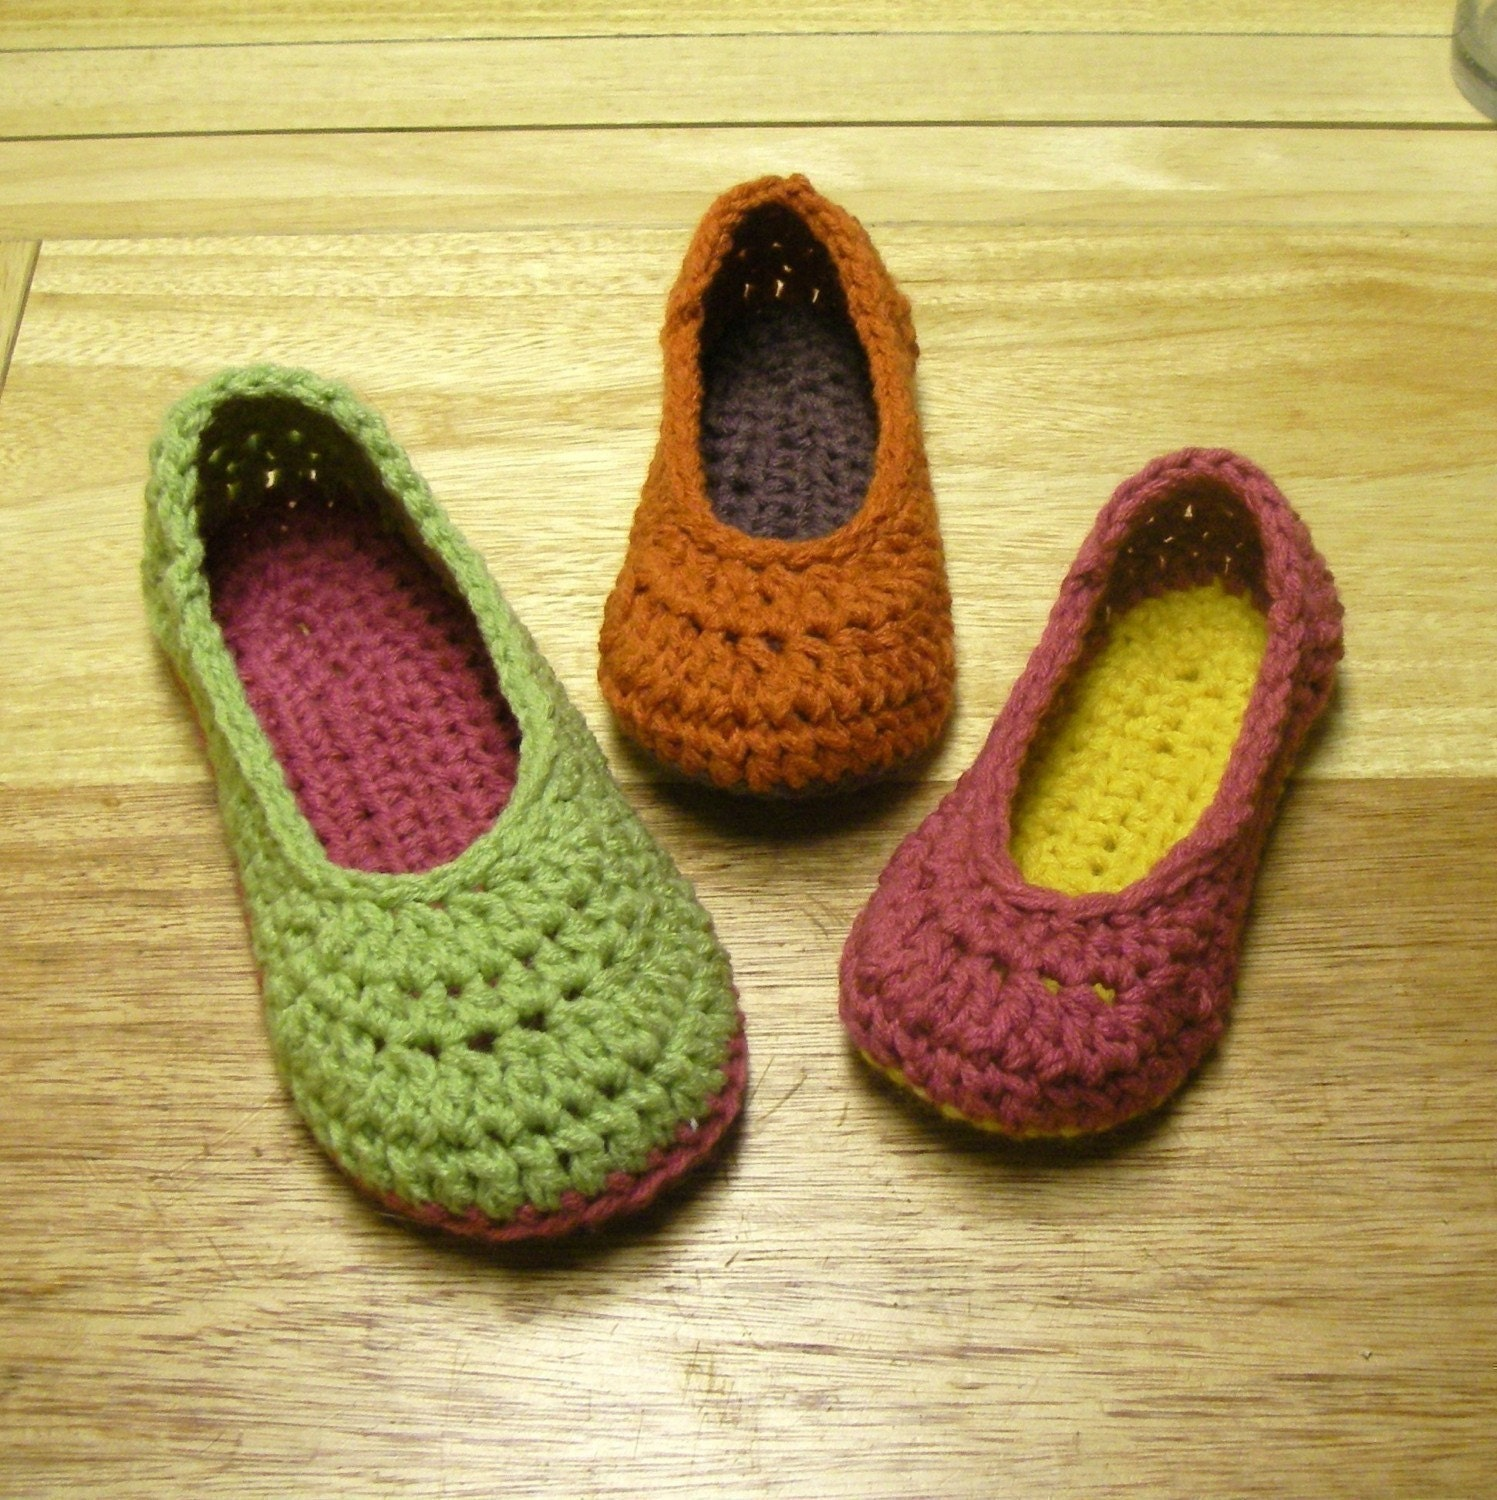 Crochet Slipper Patterns, Free Slipper Crochet Patterns, Crochet